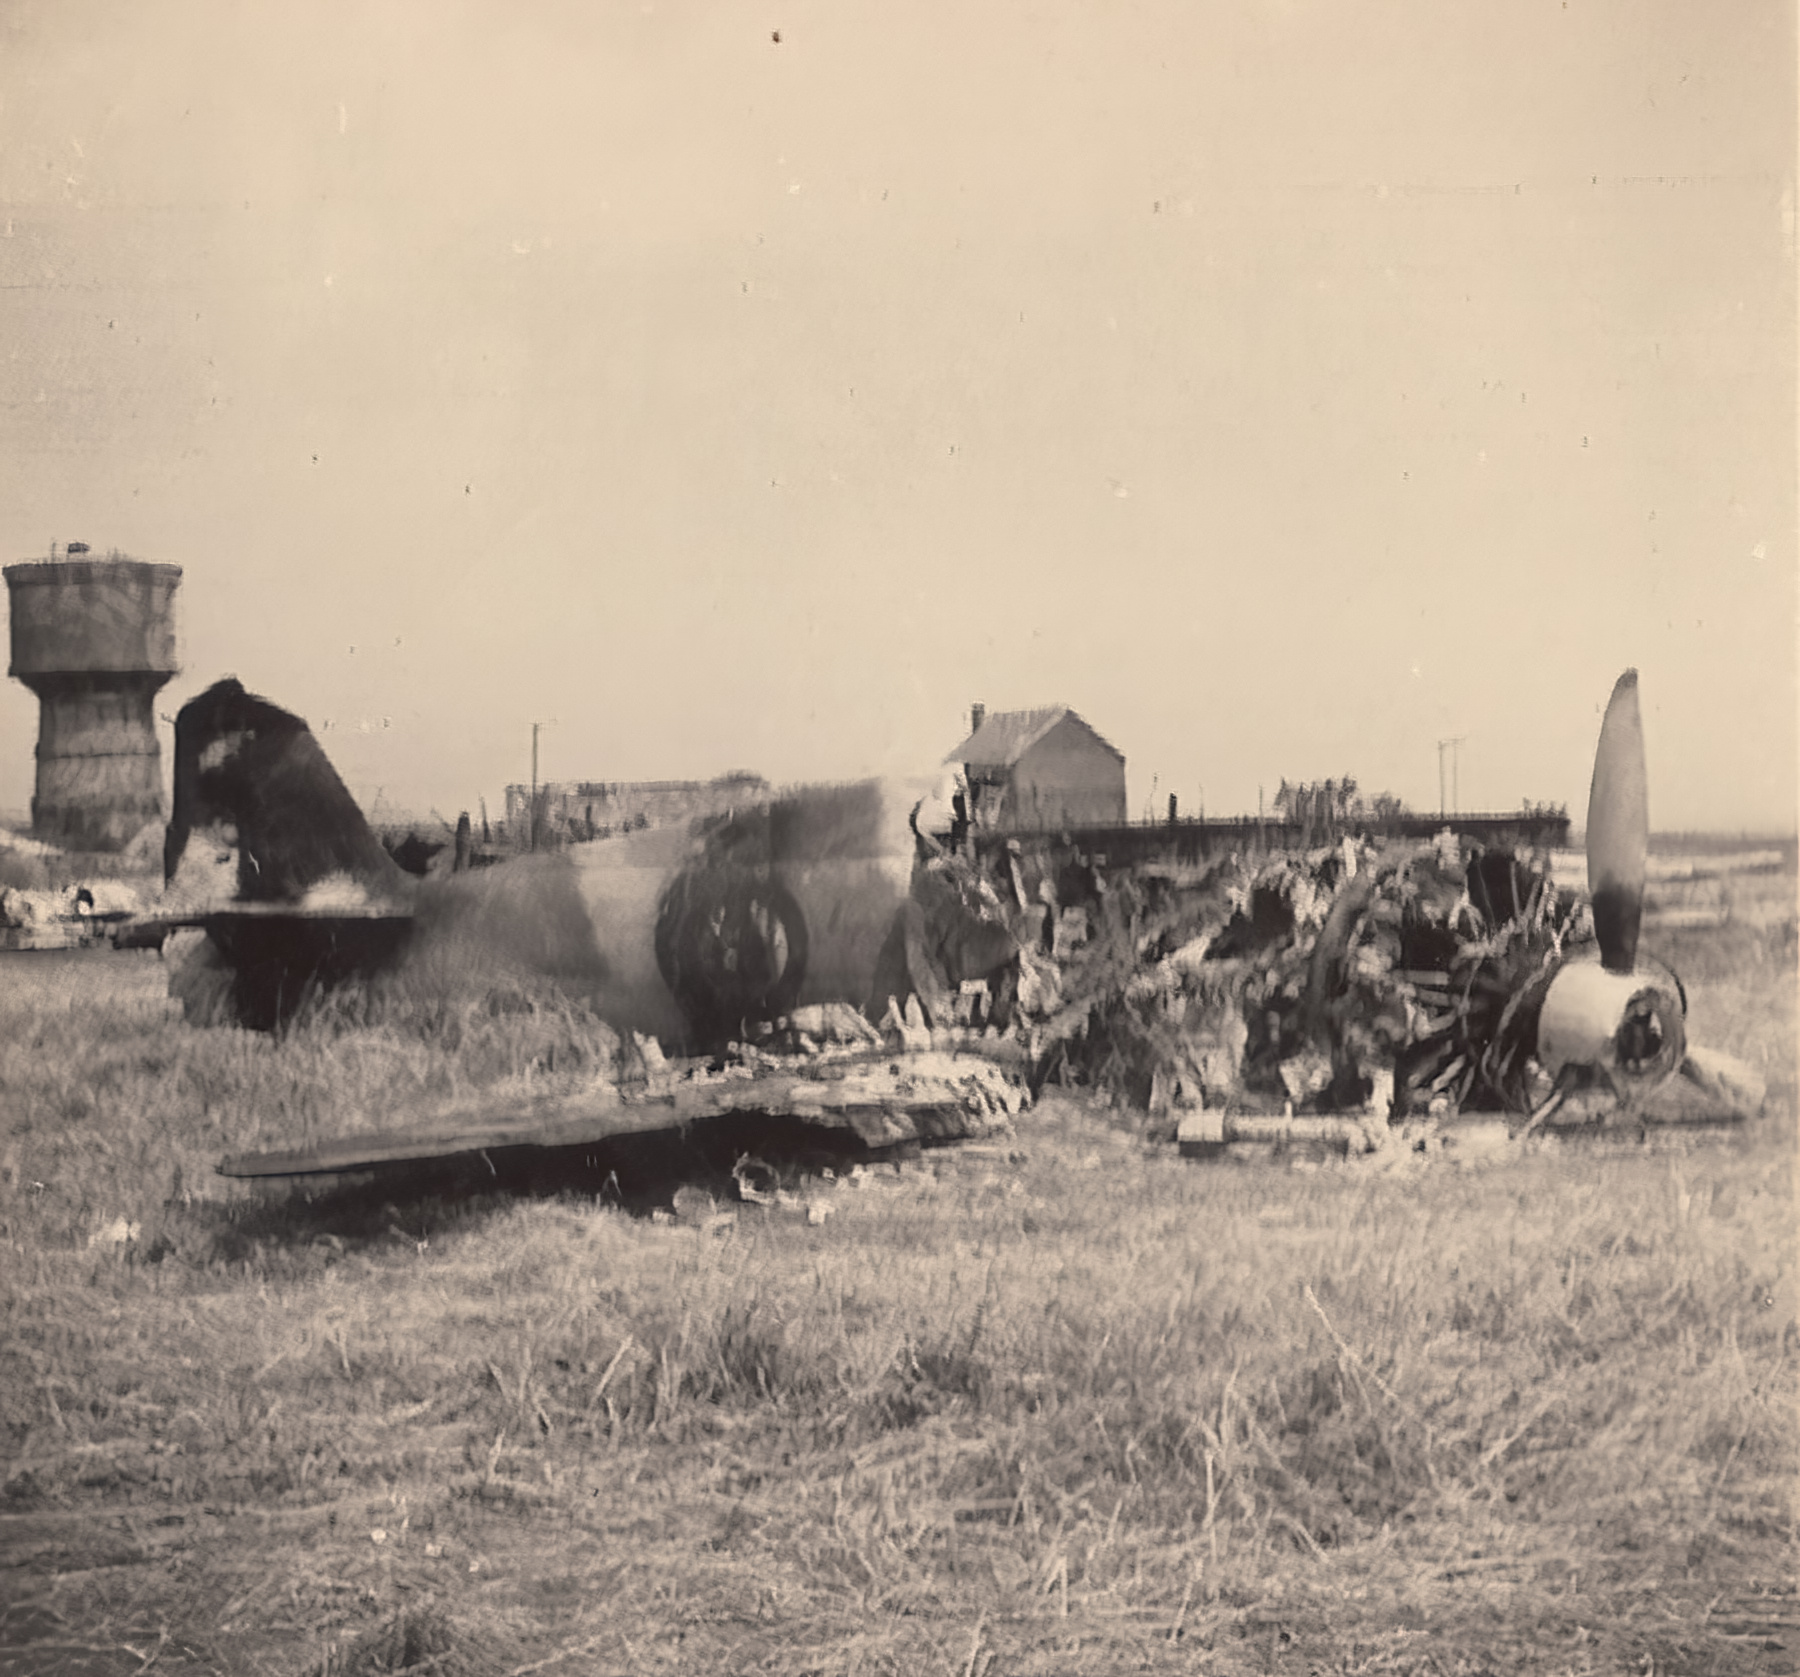 French Airforce Bloch MB 152C1 destroyed after force landing France May Jun 1940 ebay 02